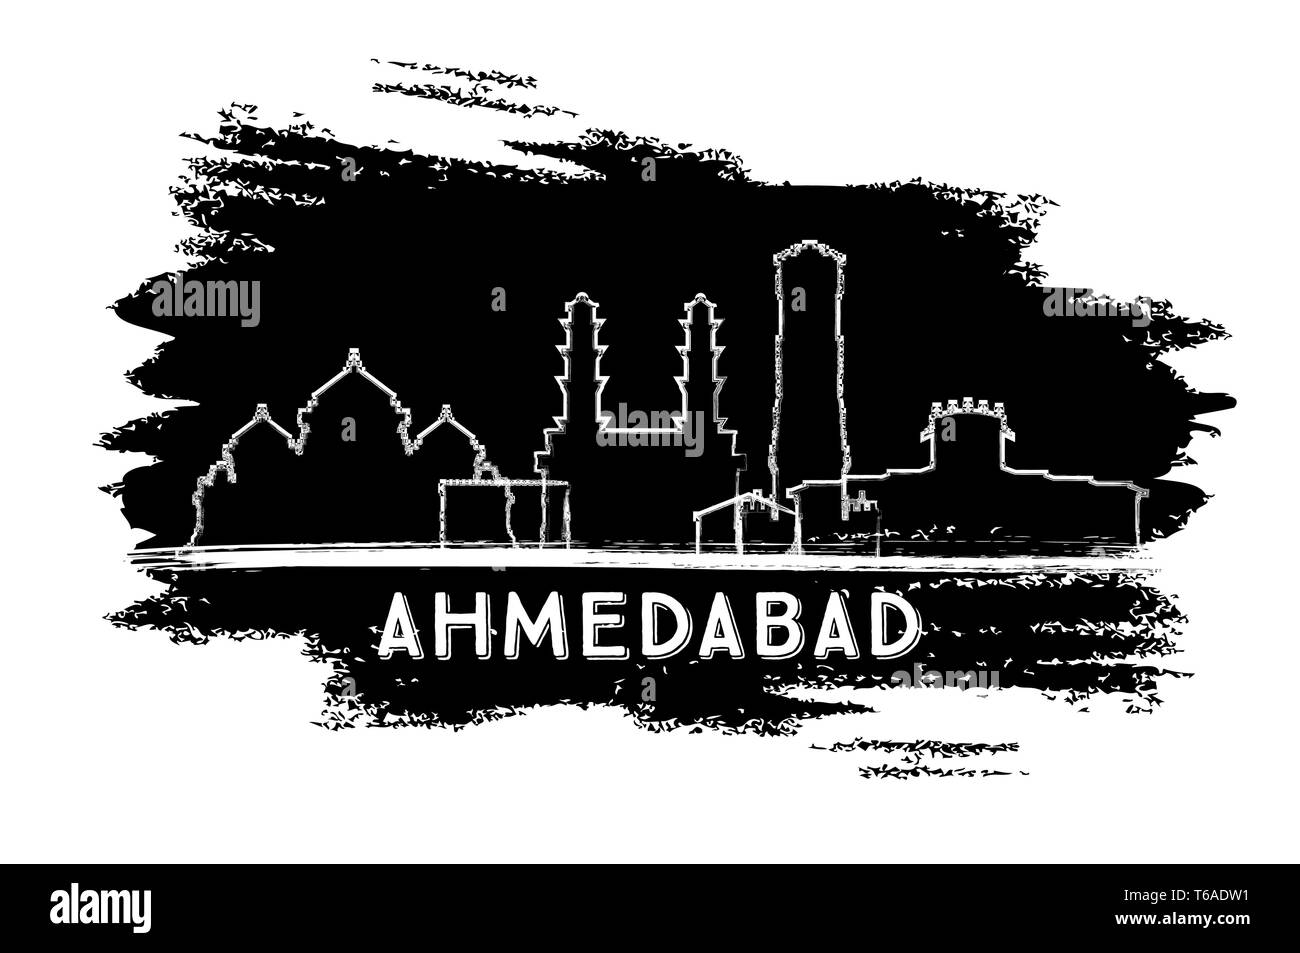 Ahmedabad India City Skyline Silhouette. Hand Drawn Sketch. Vector Illustration. Business Travel and Tourism Concept with Historic Architecture. - Stock Vector